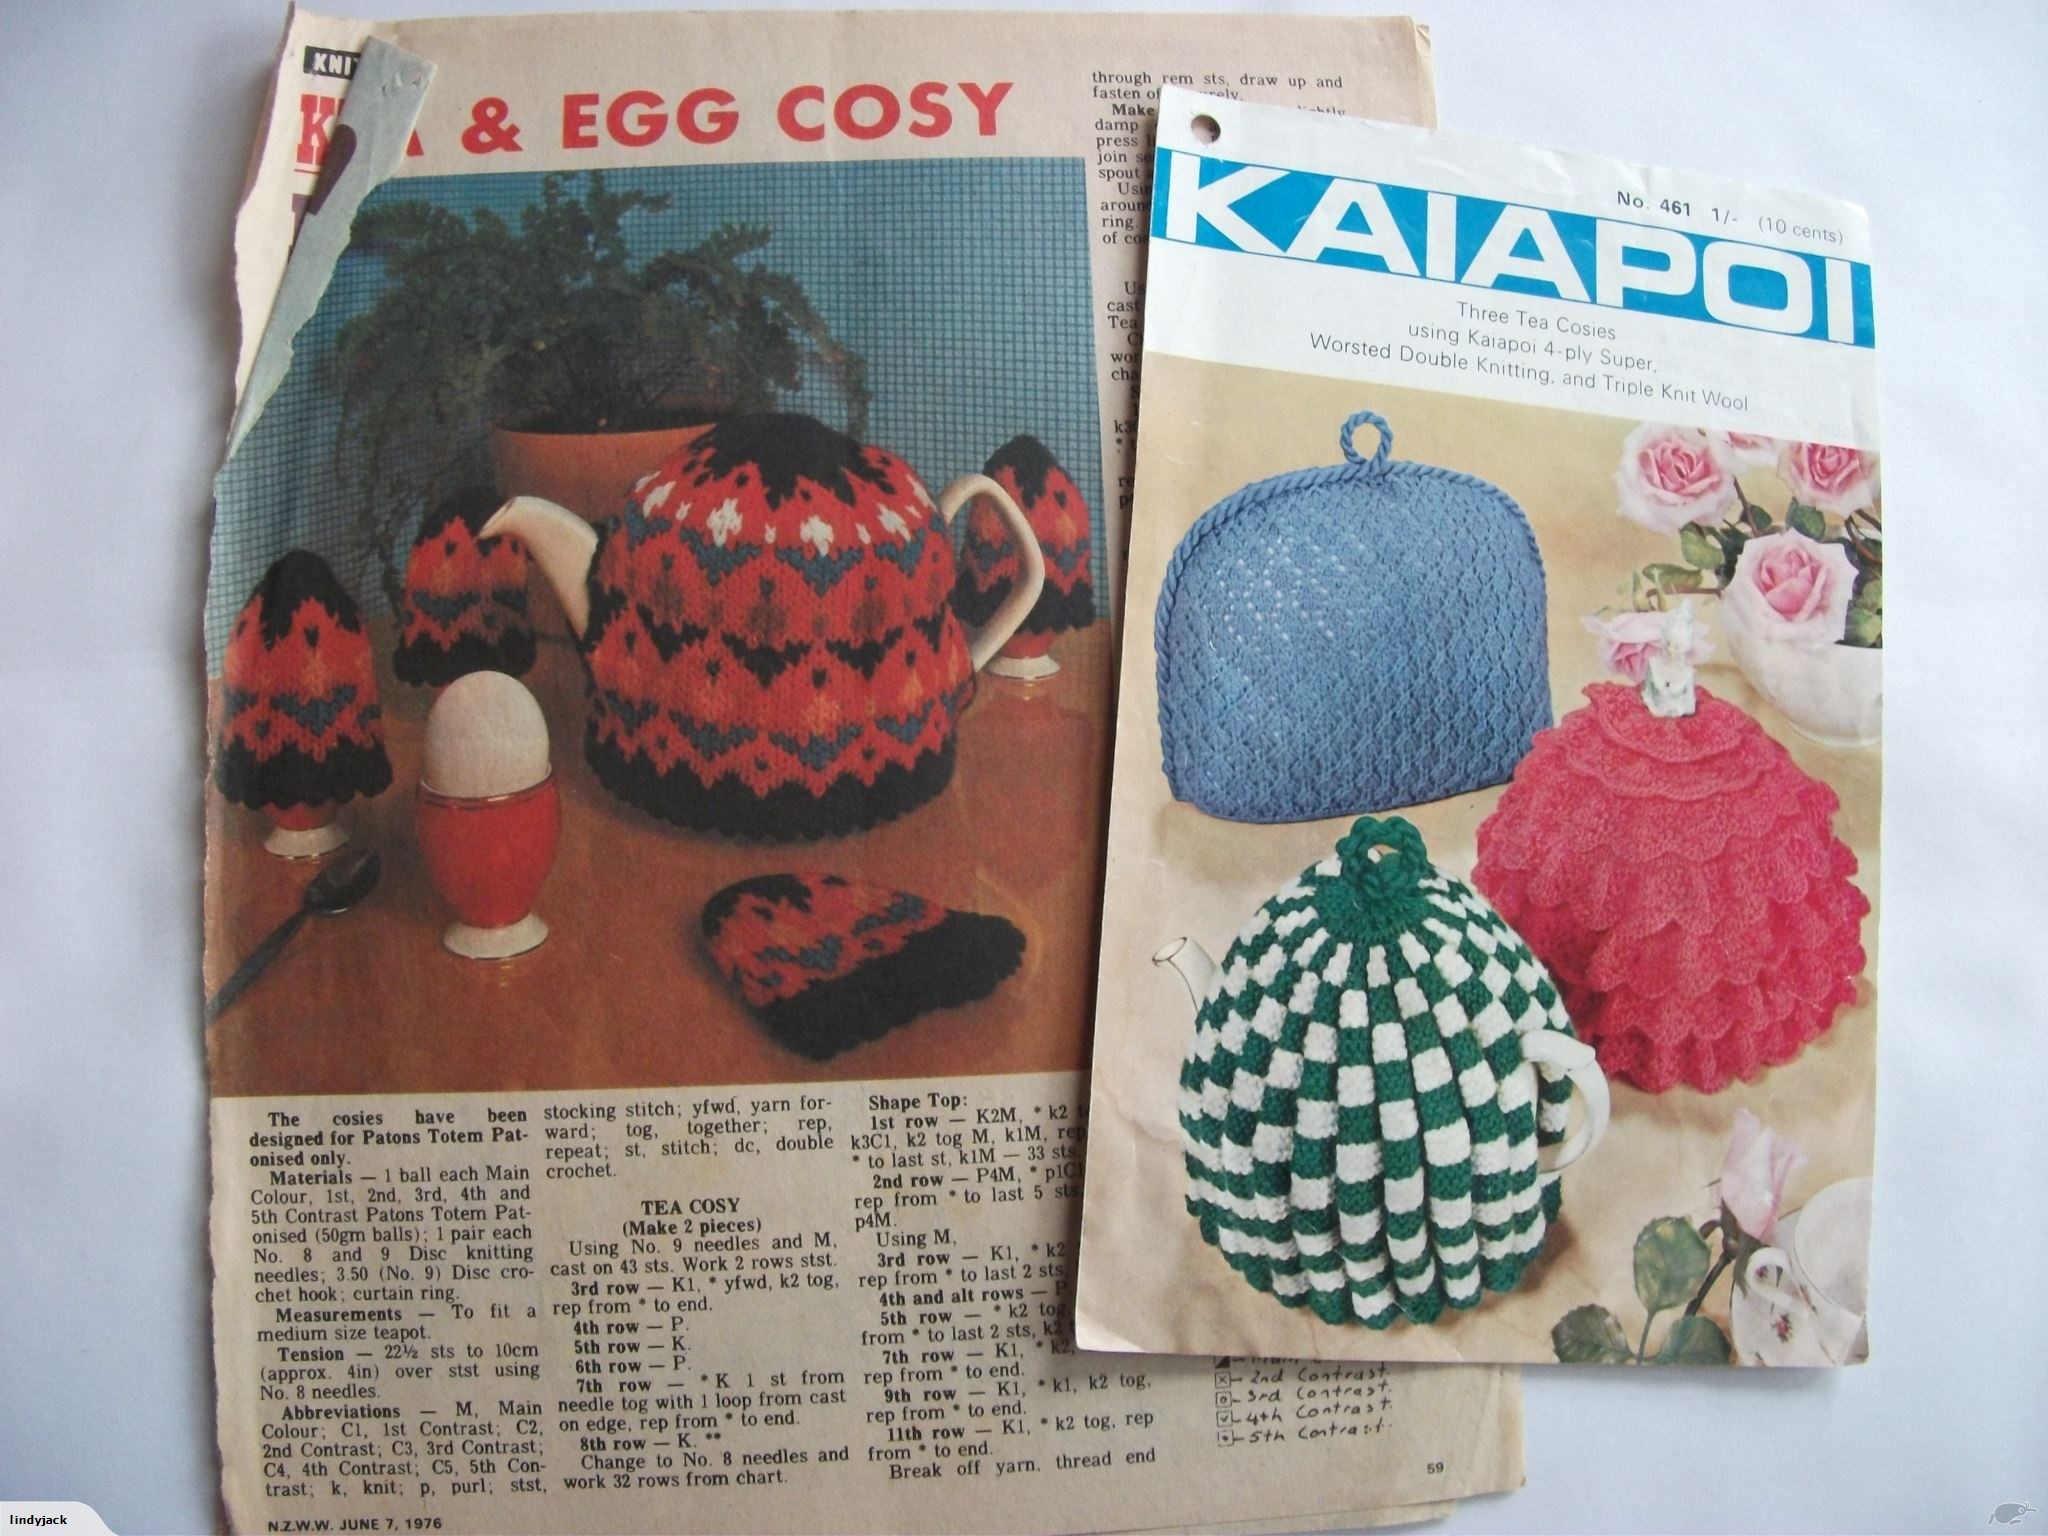 Tea Cosy Patterns To Knit Tea Egg Cosy Knitting Patterns